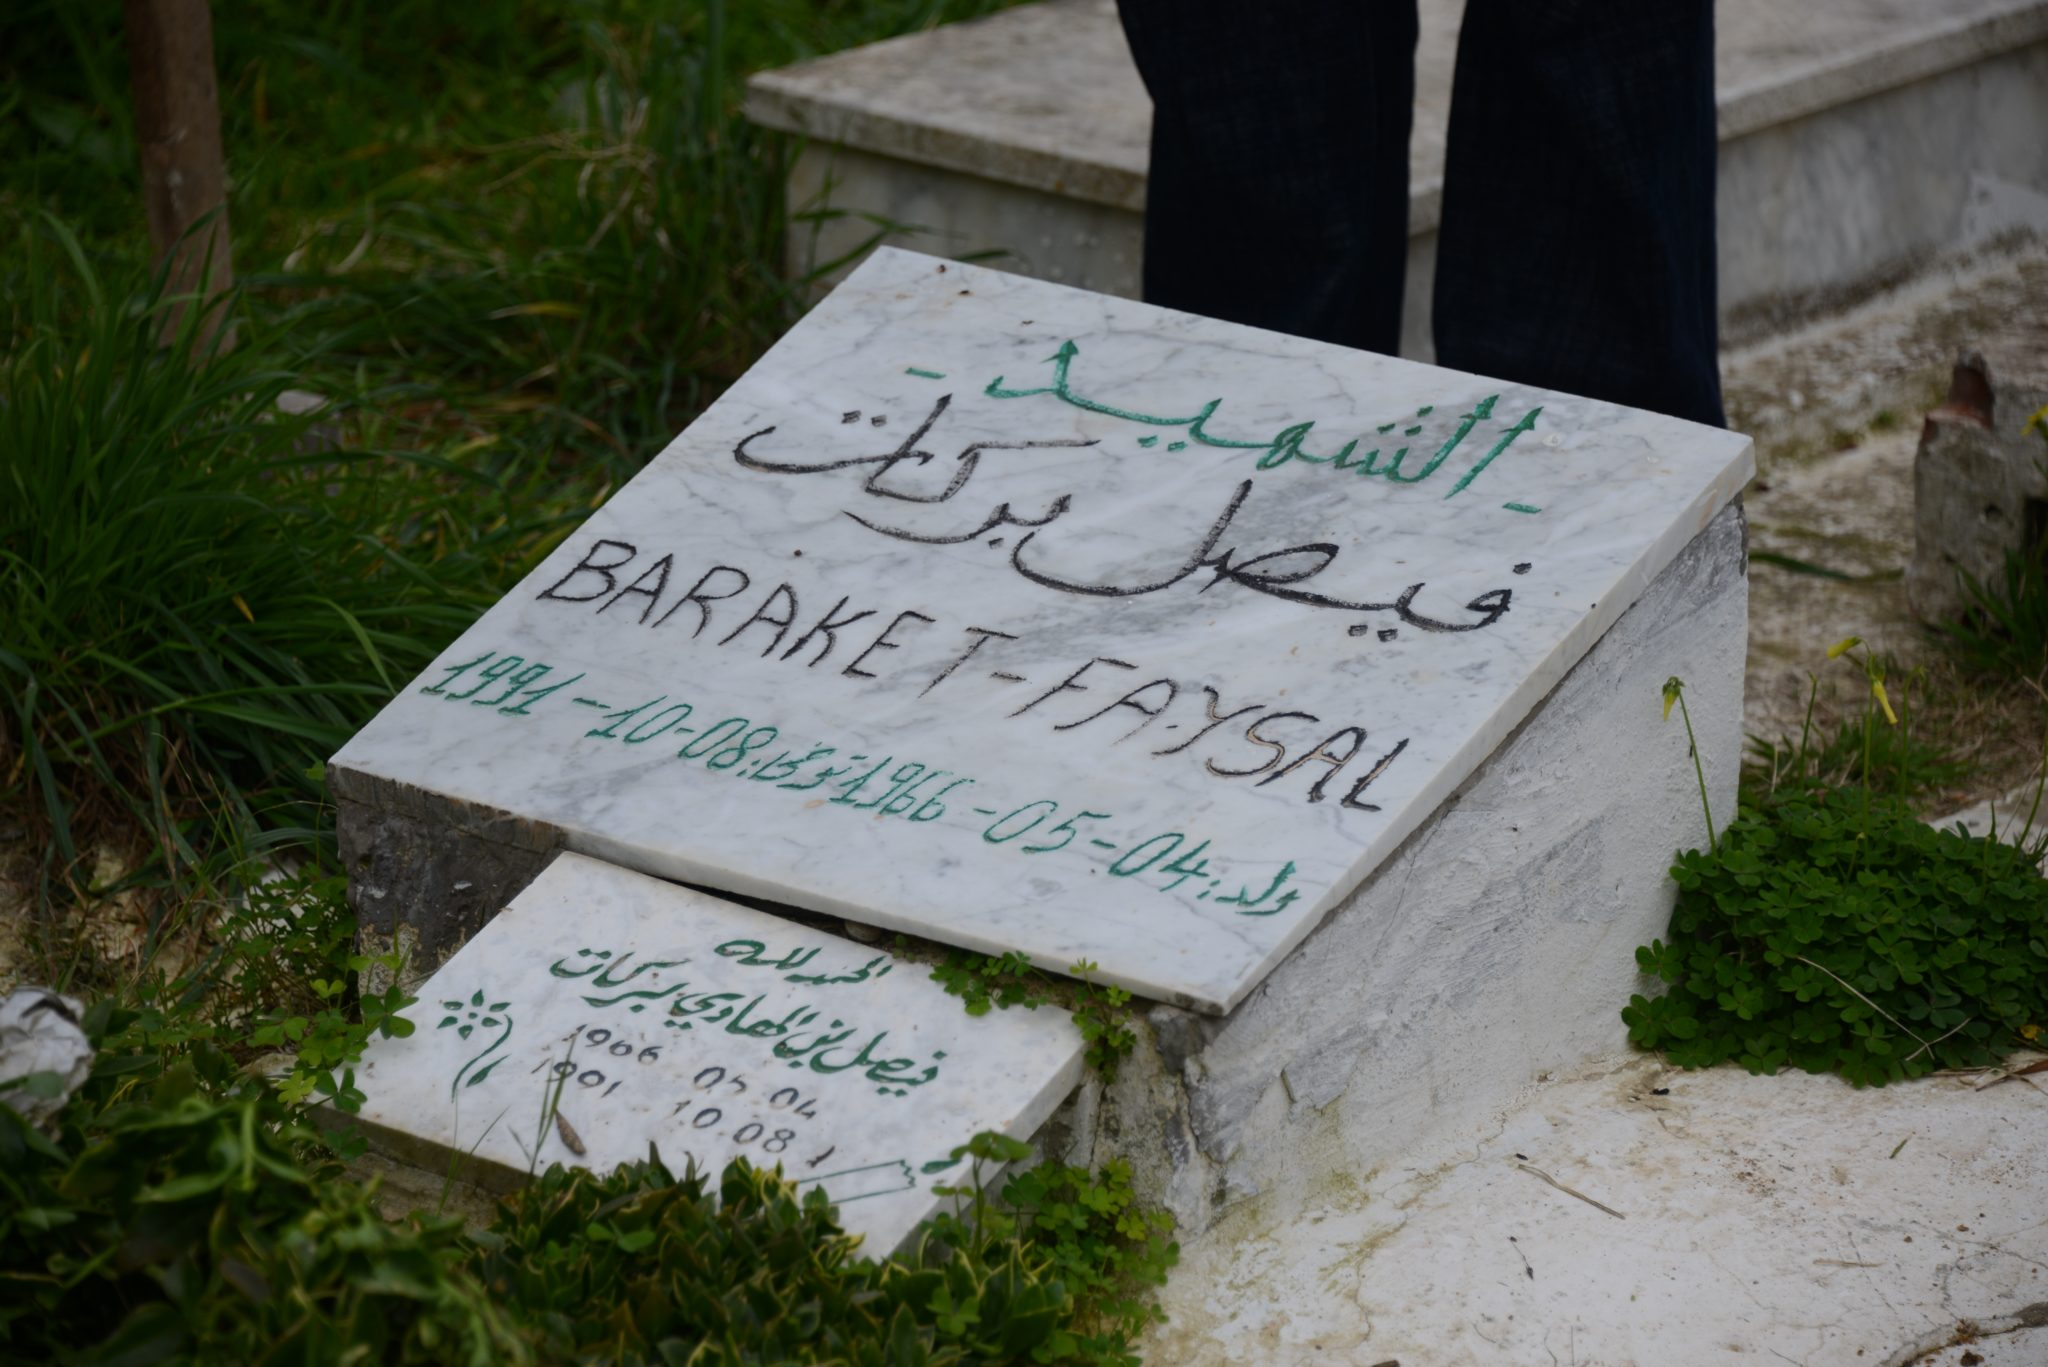 Tunisia: Faysal Baraket's torturers shielded from accountability 26 years after his death